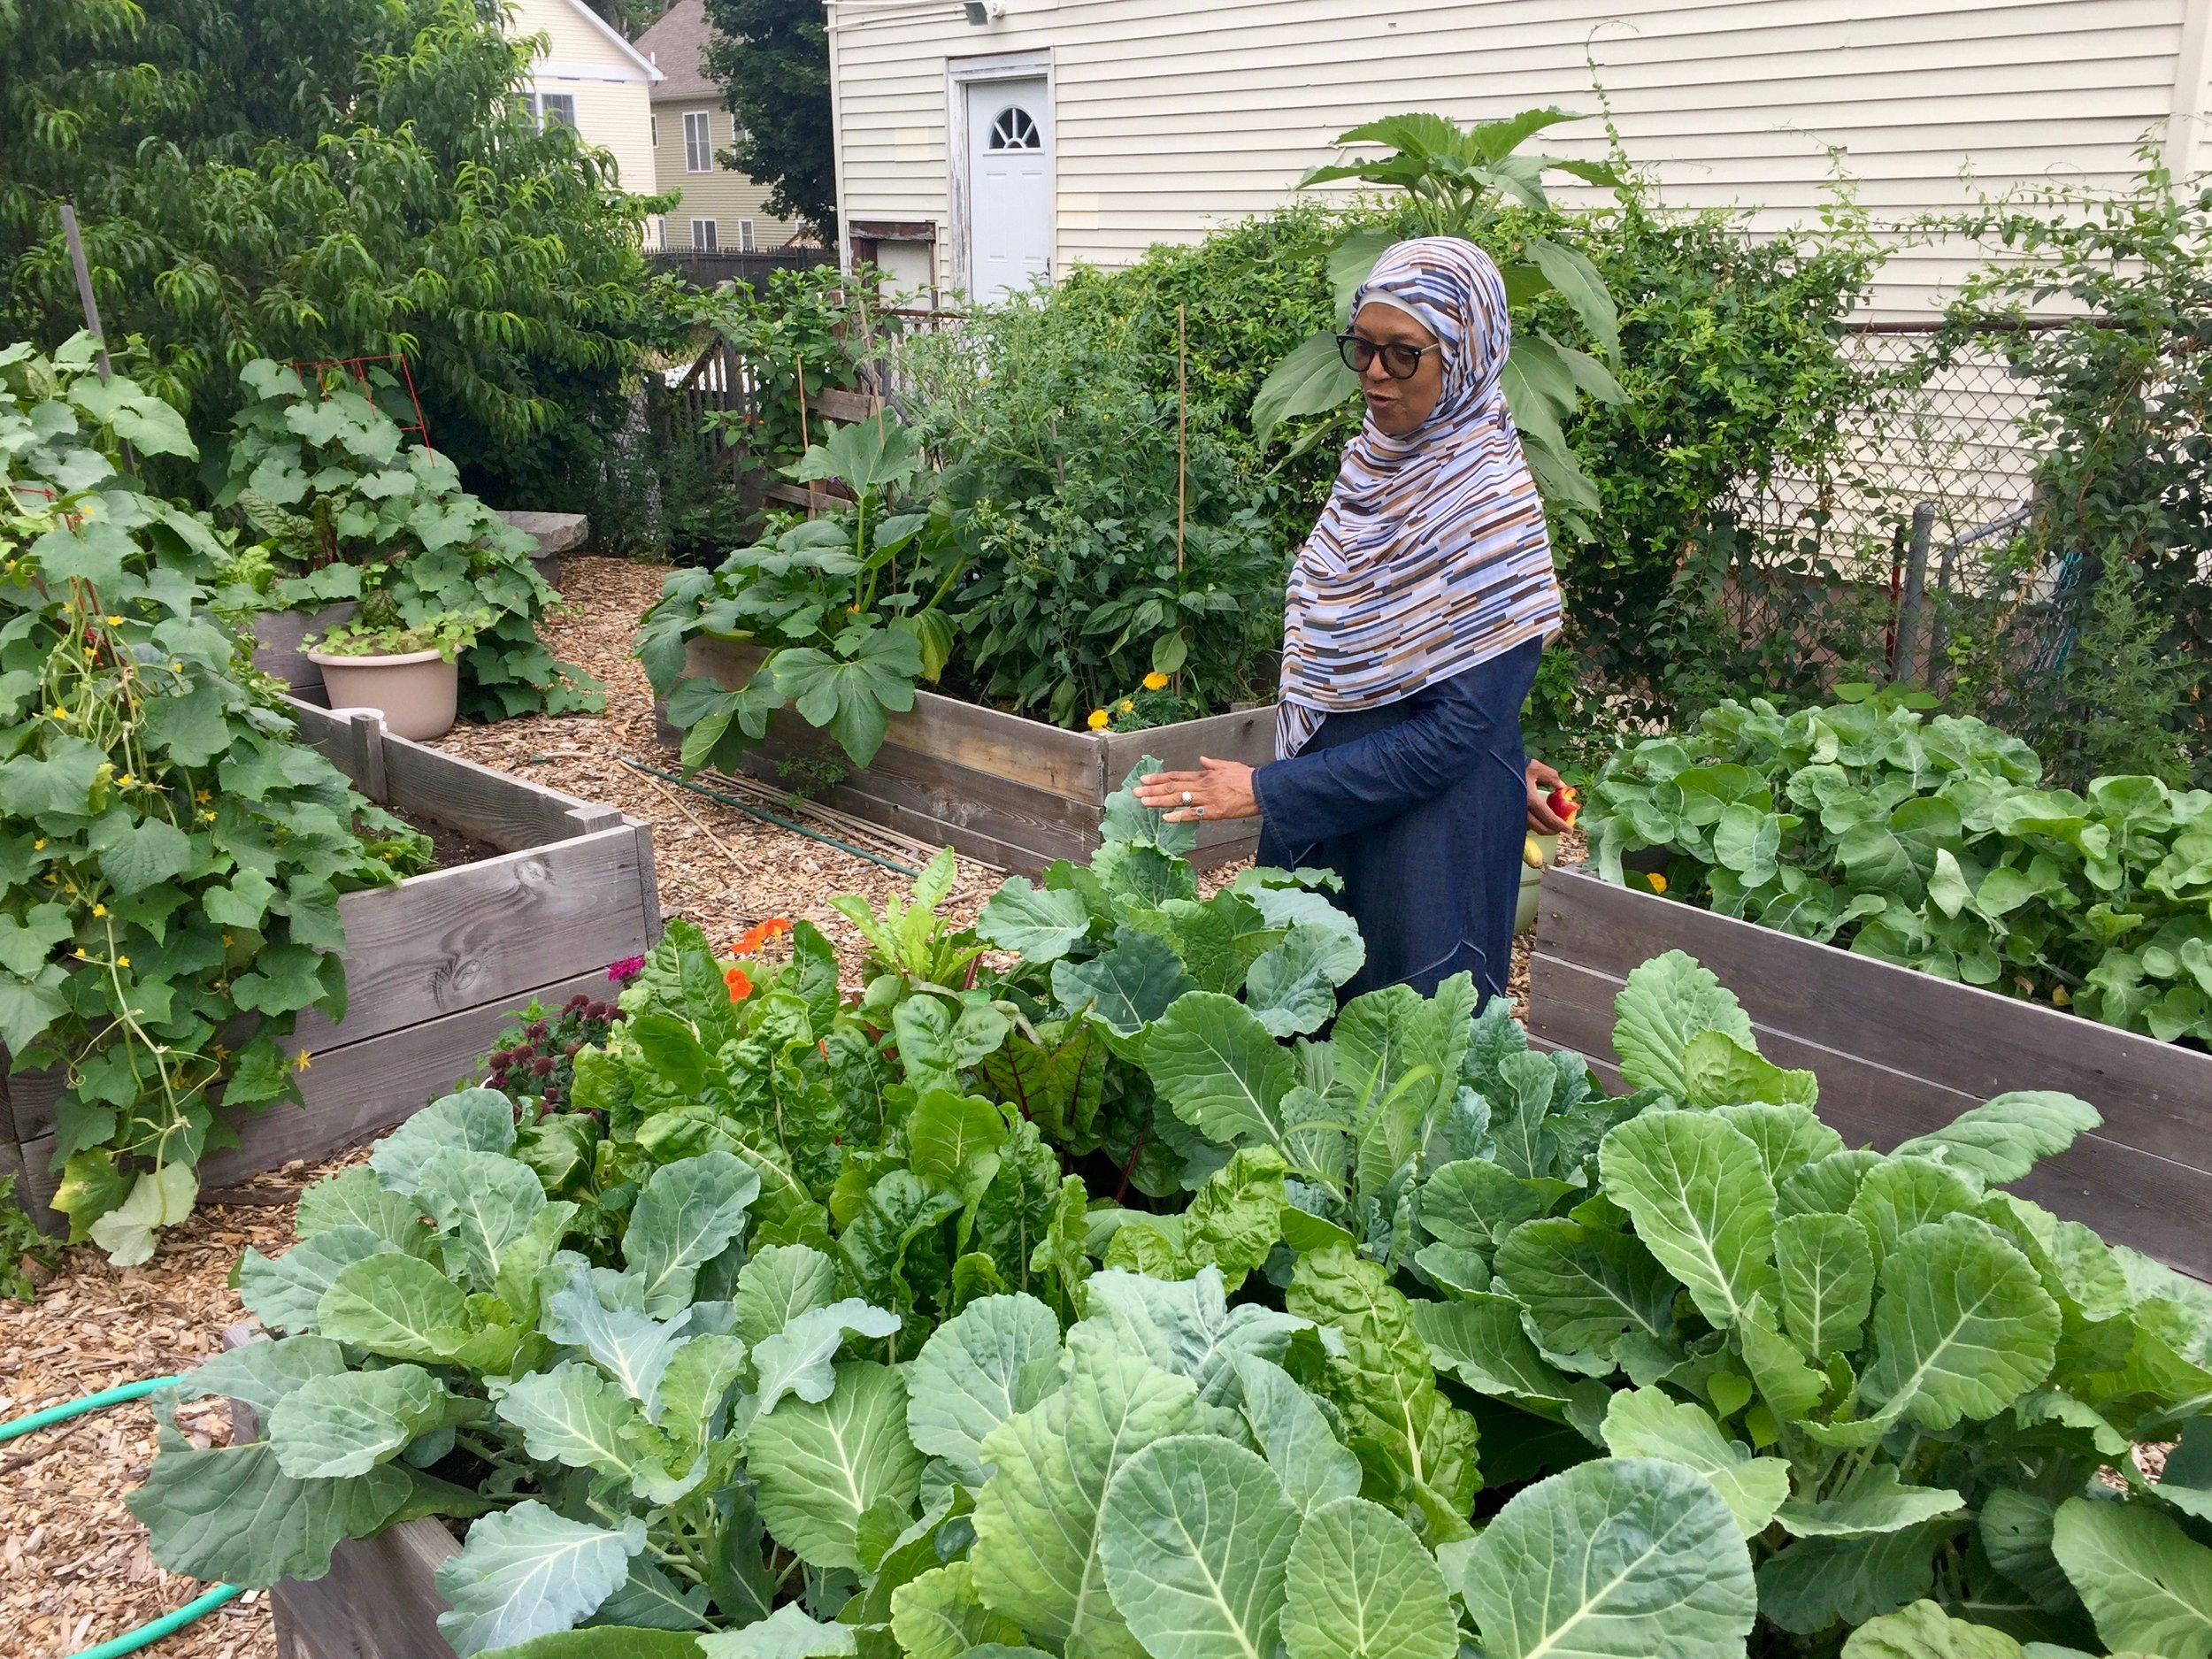 Jamilah Rasheed, the driving force behind the Field of Greens community garden in the Hill neighborhood of New Haven, CT